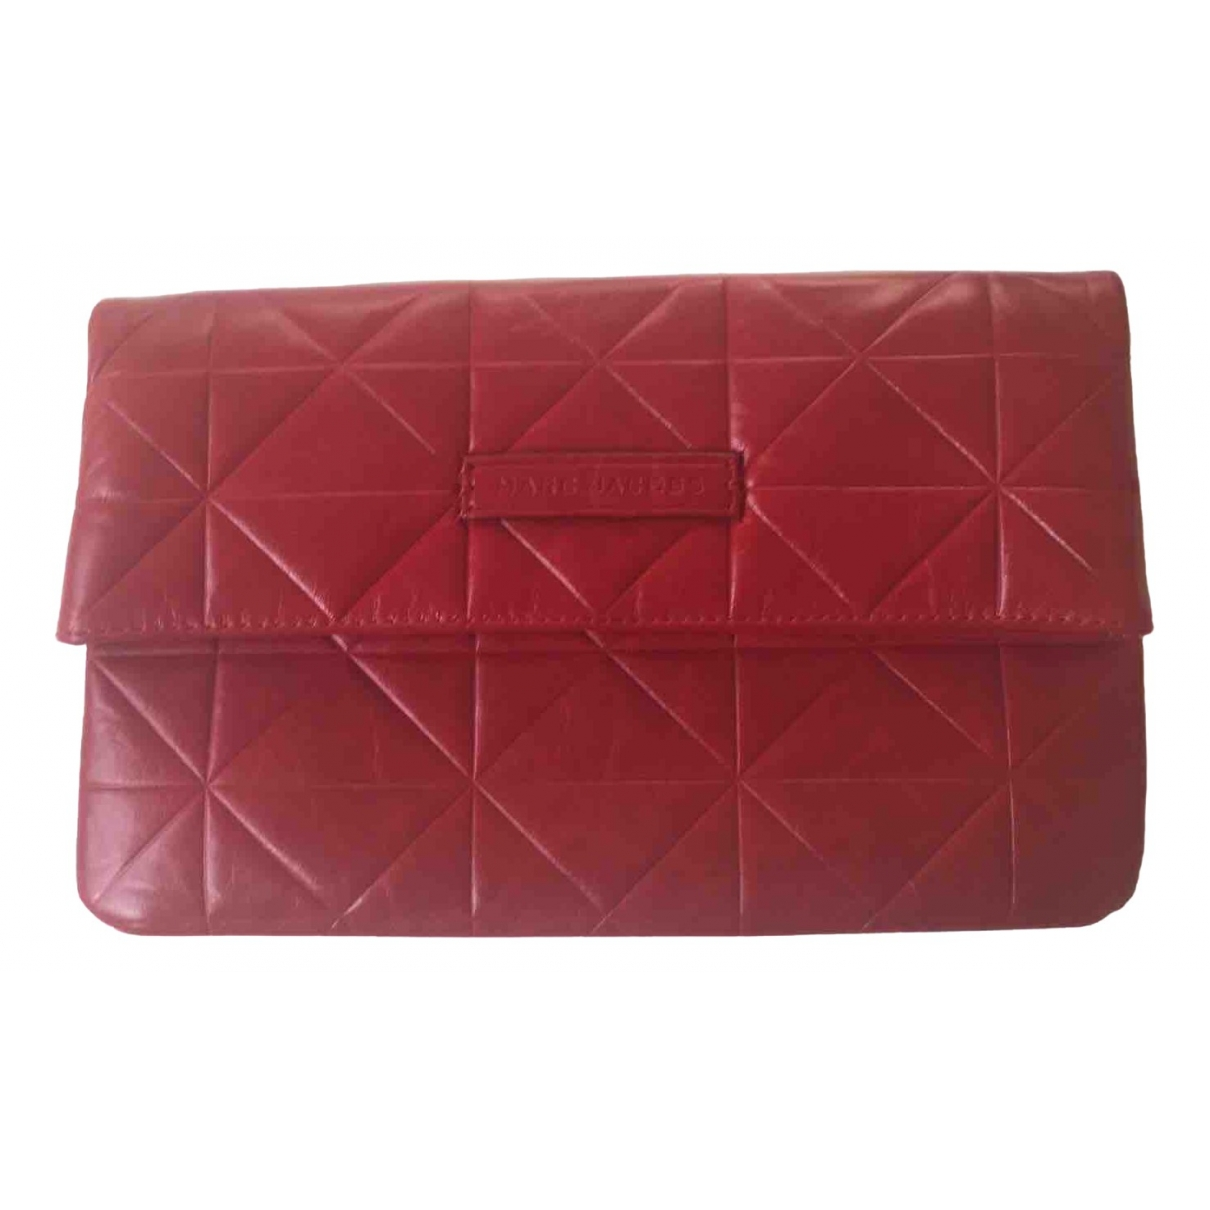 Marc Jacobs \N Red Leather Clutch bag for Women \N